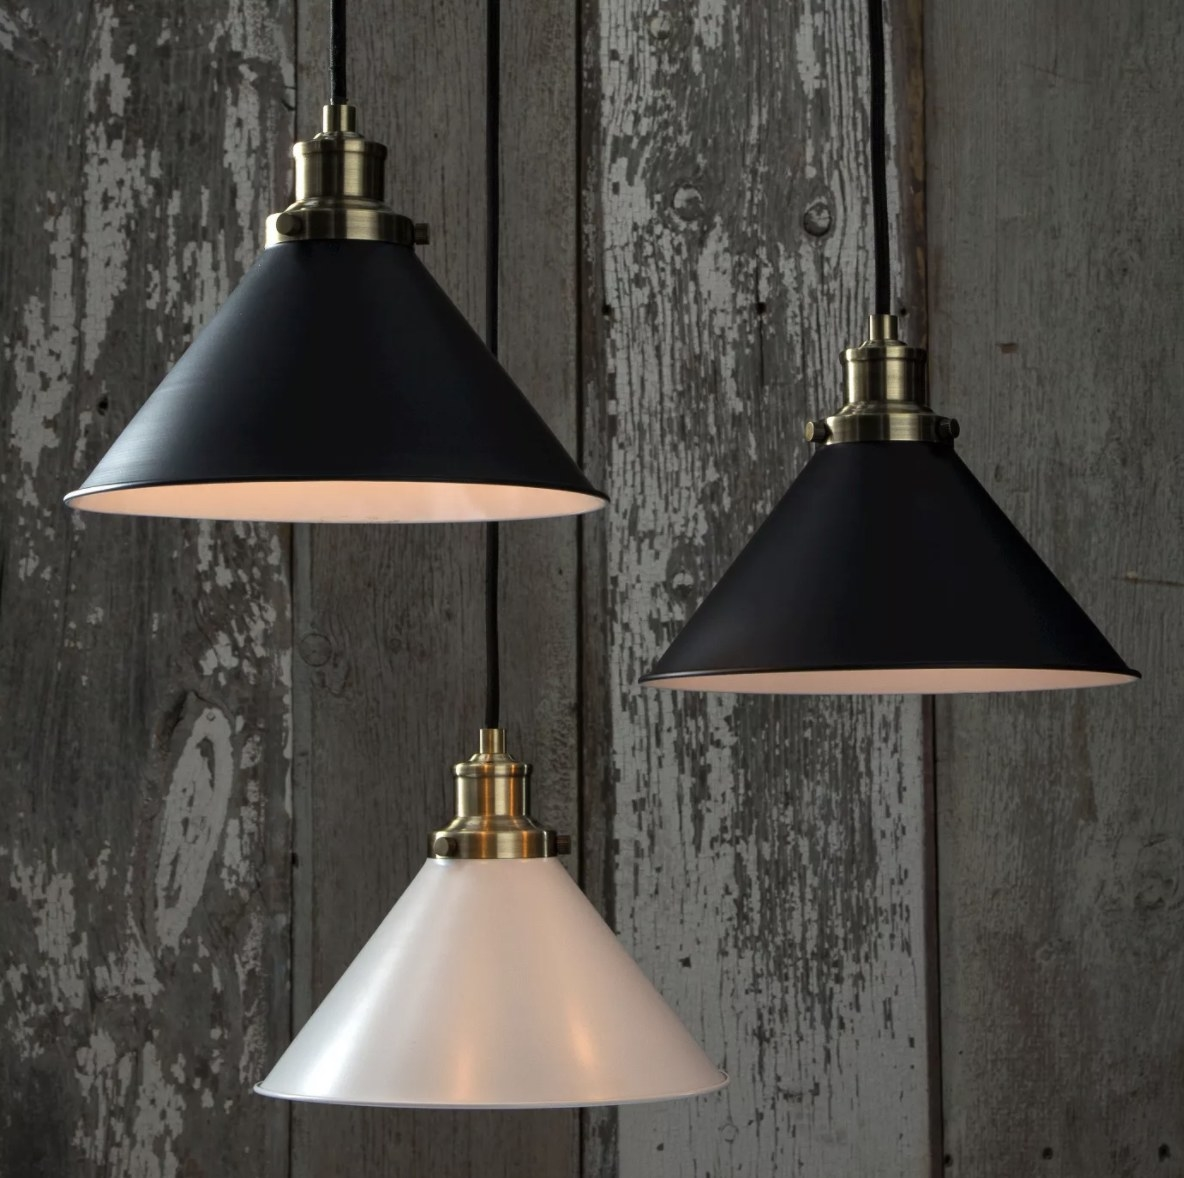 There are three light fixtures — two black and one white — in the photo against a wooden background